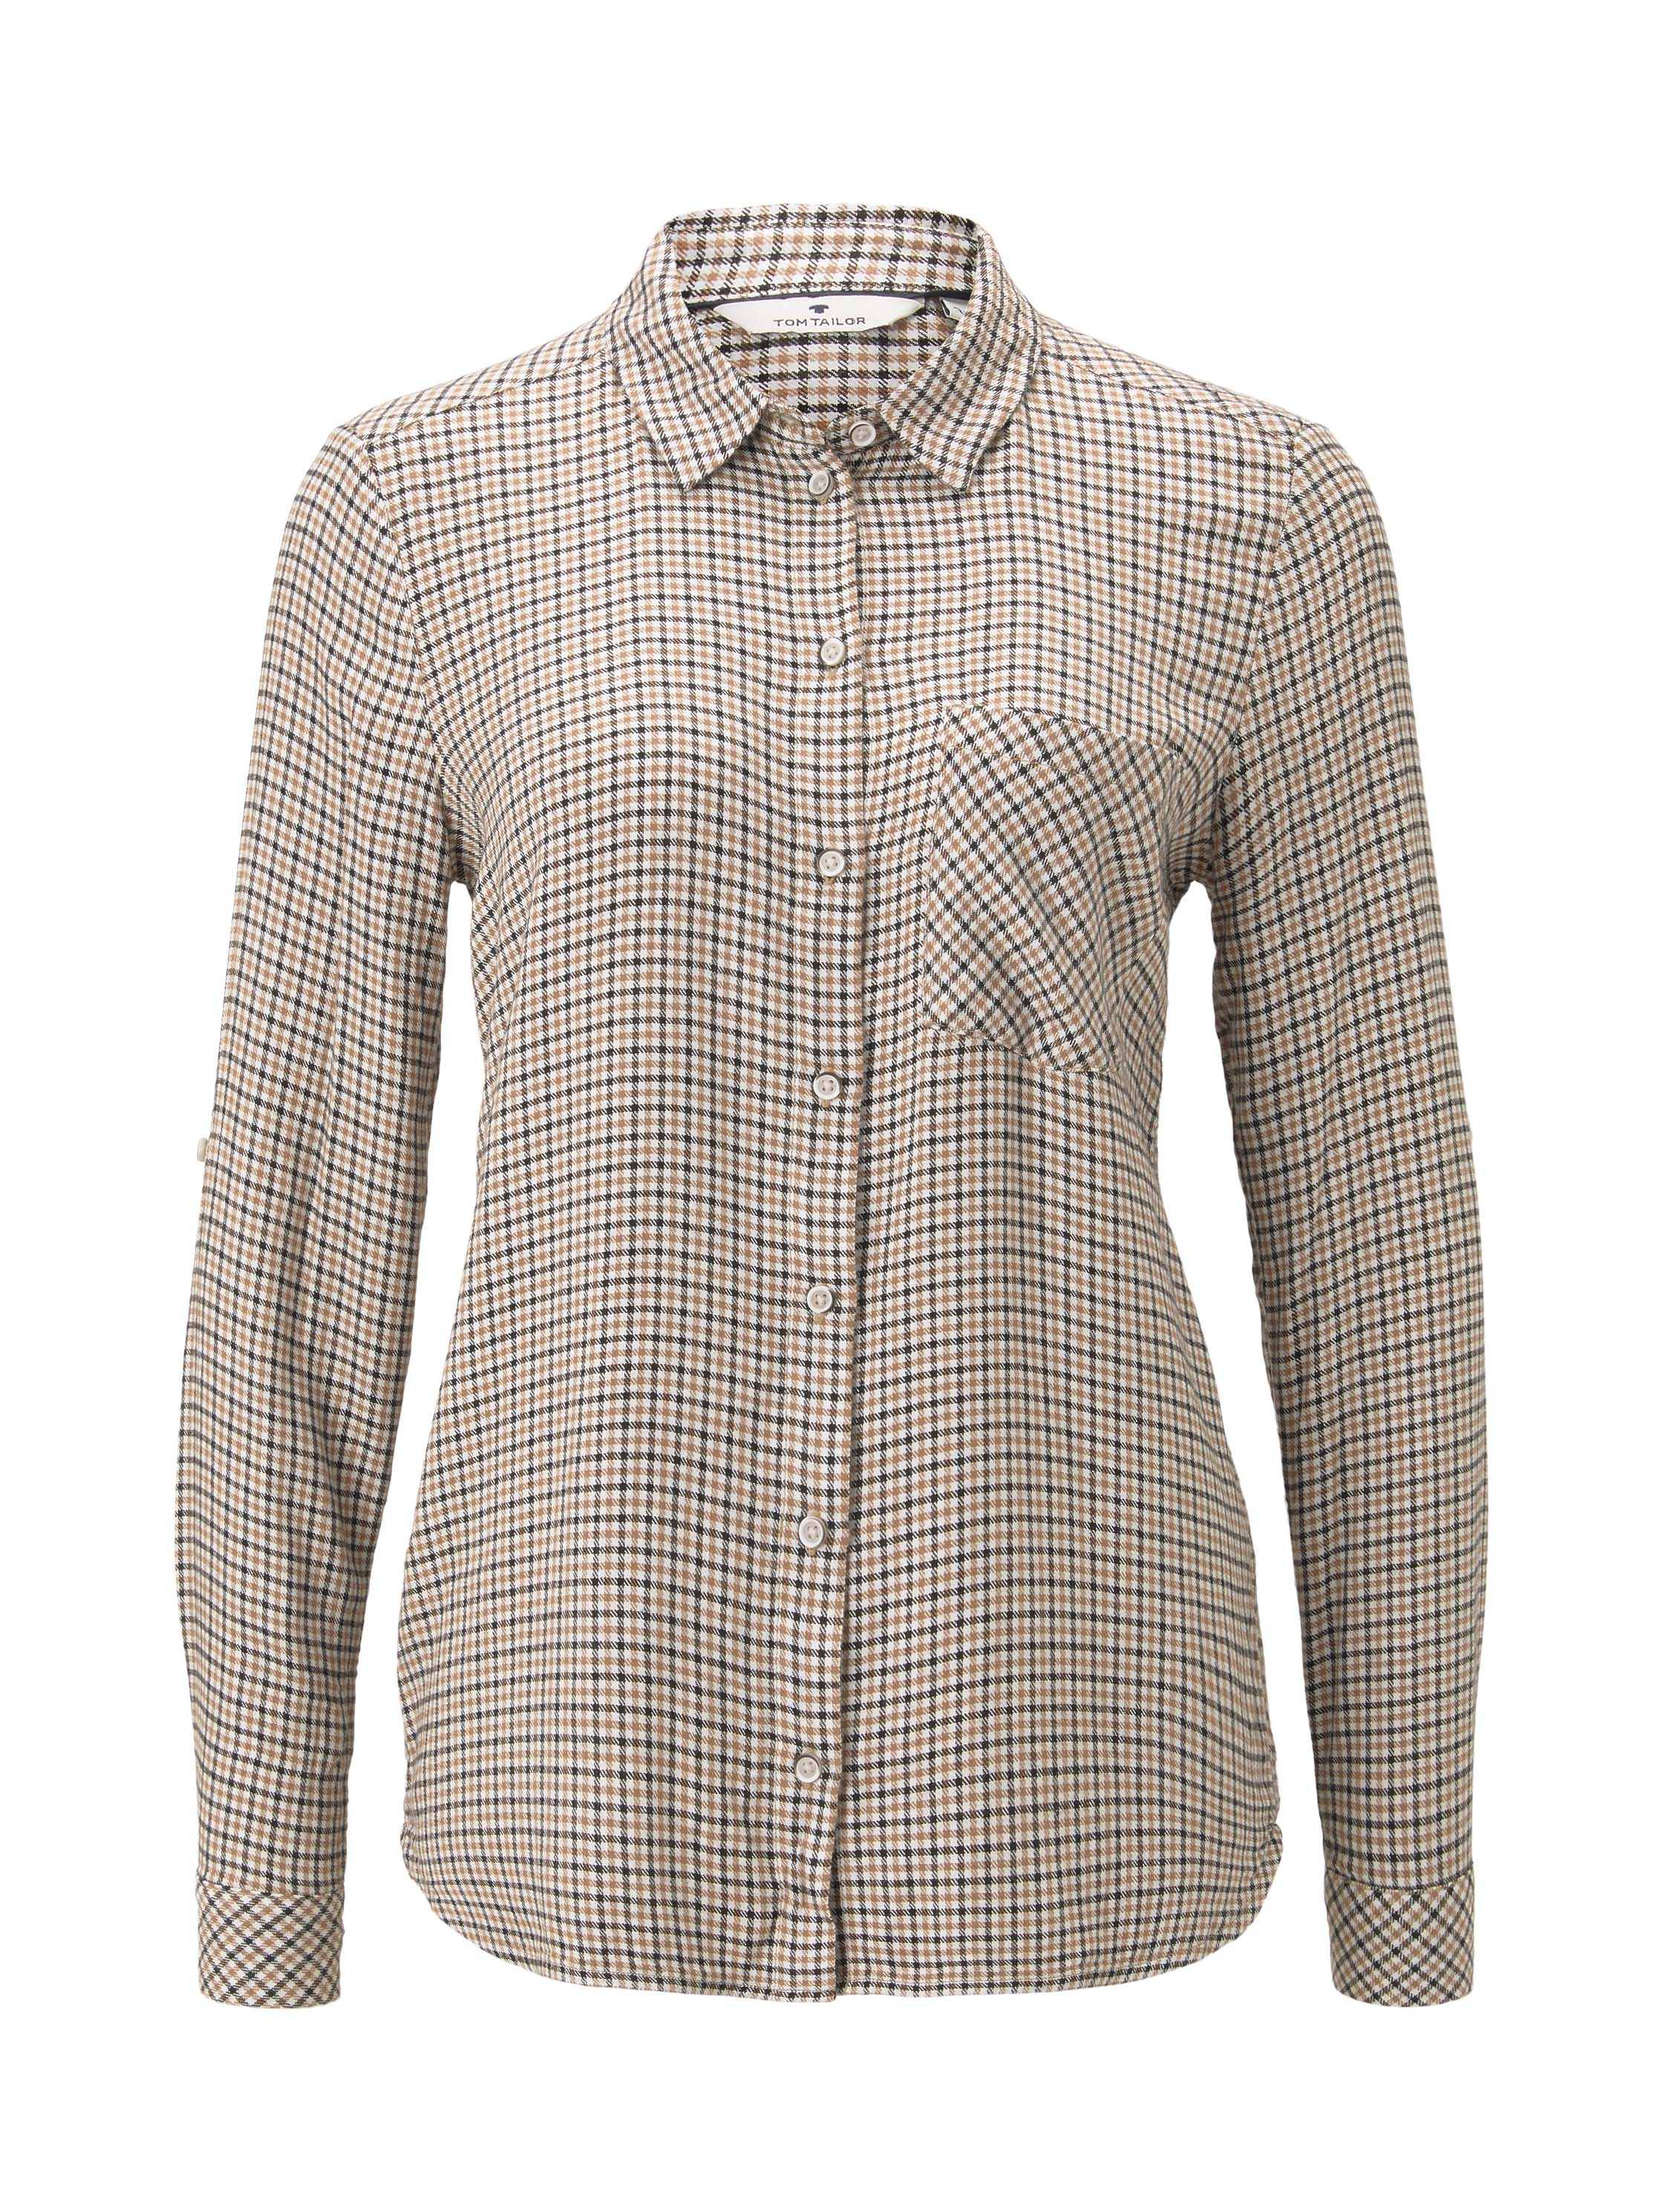 blouse checked, camel small check